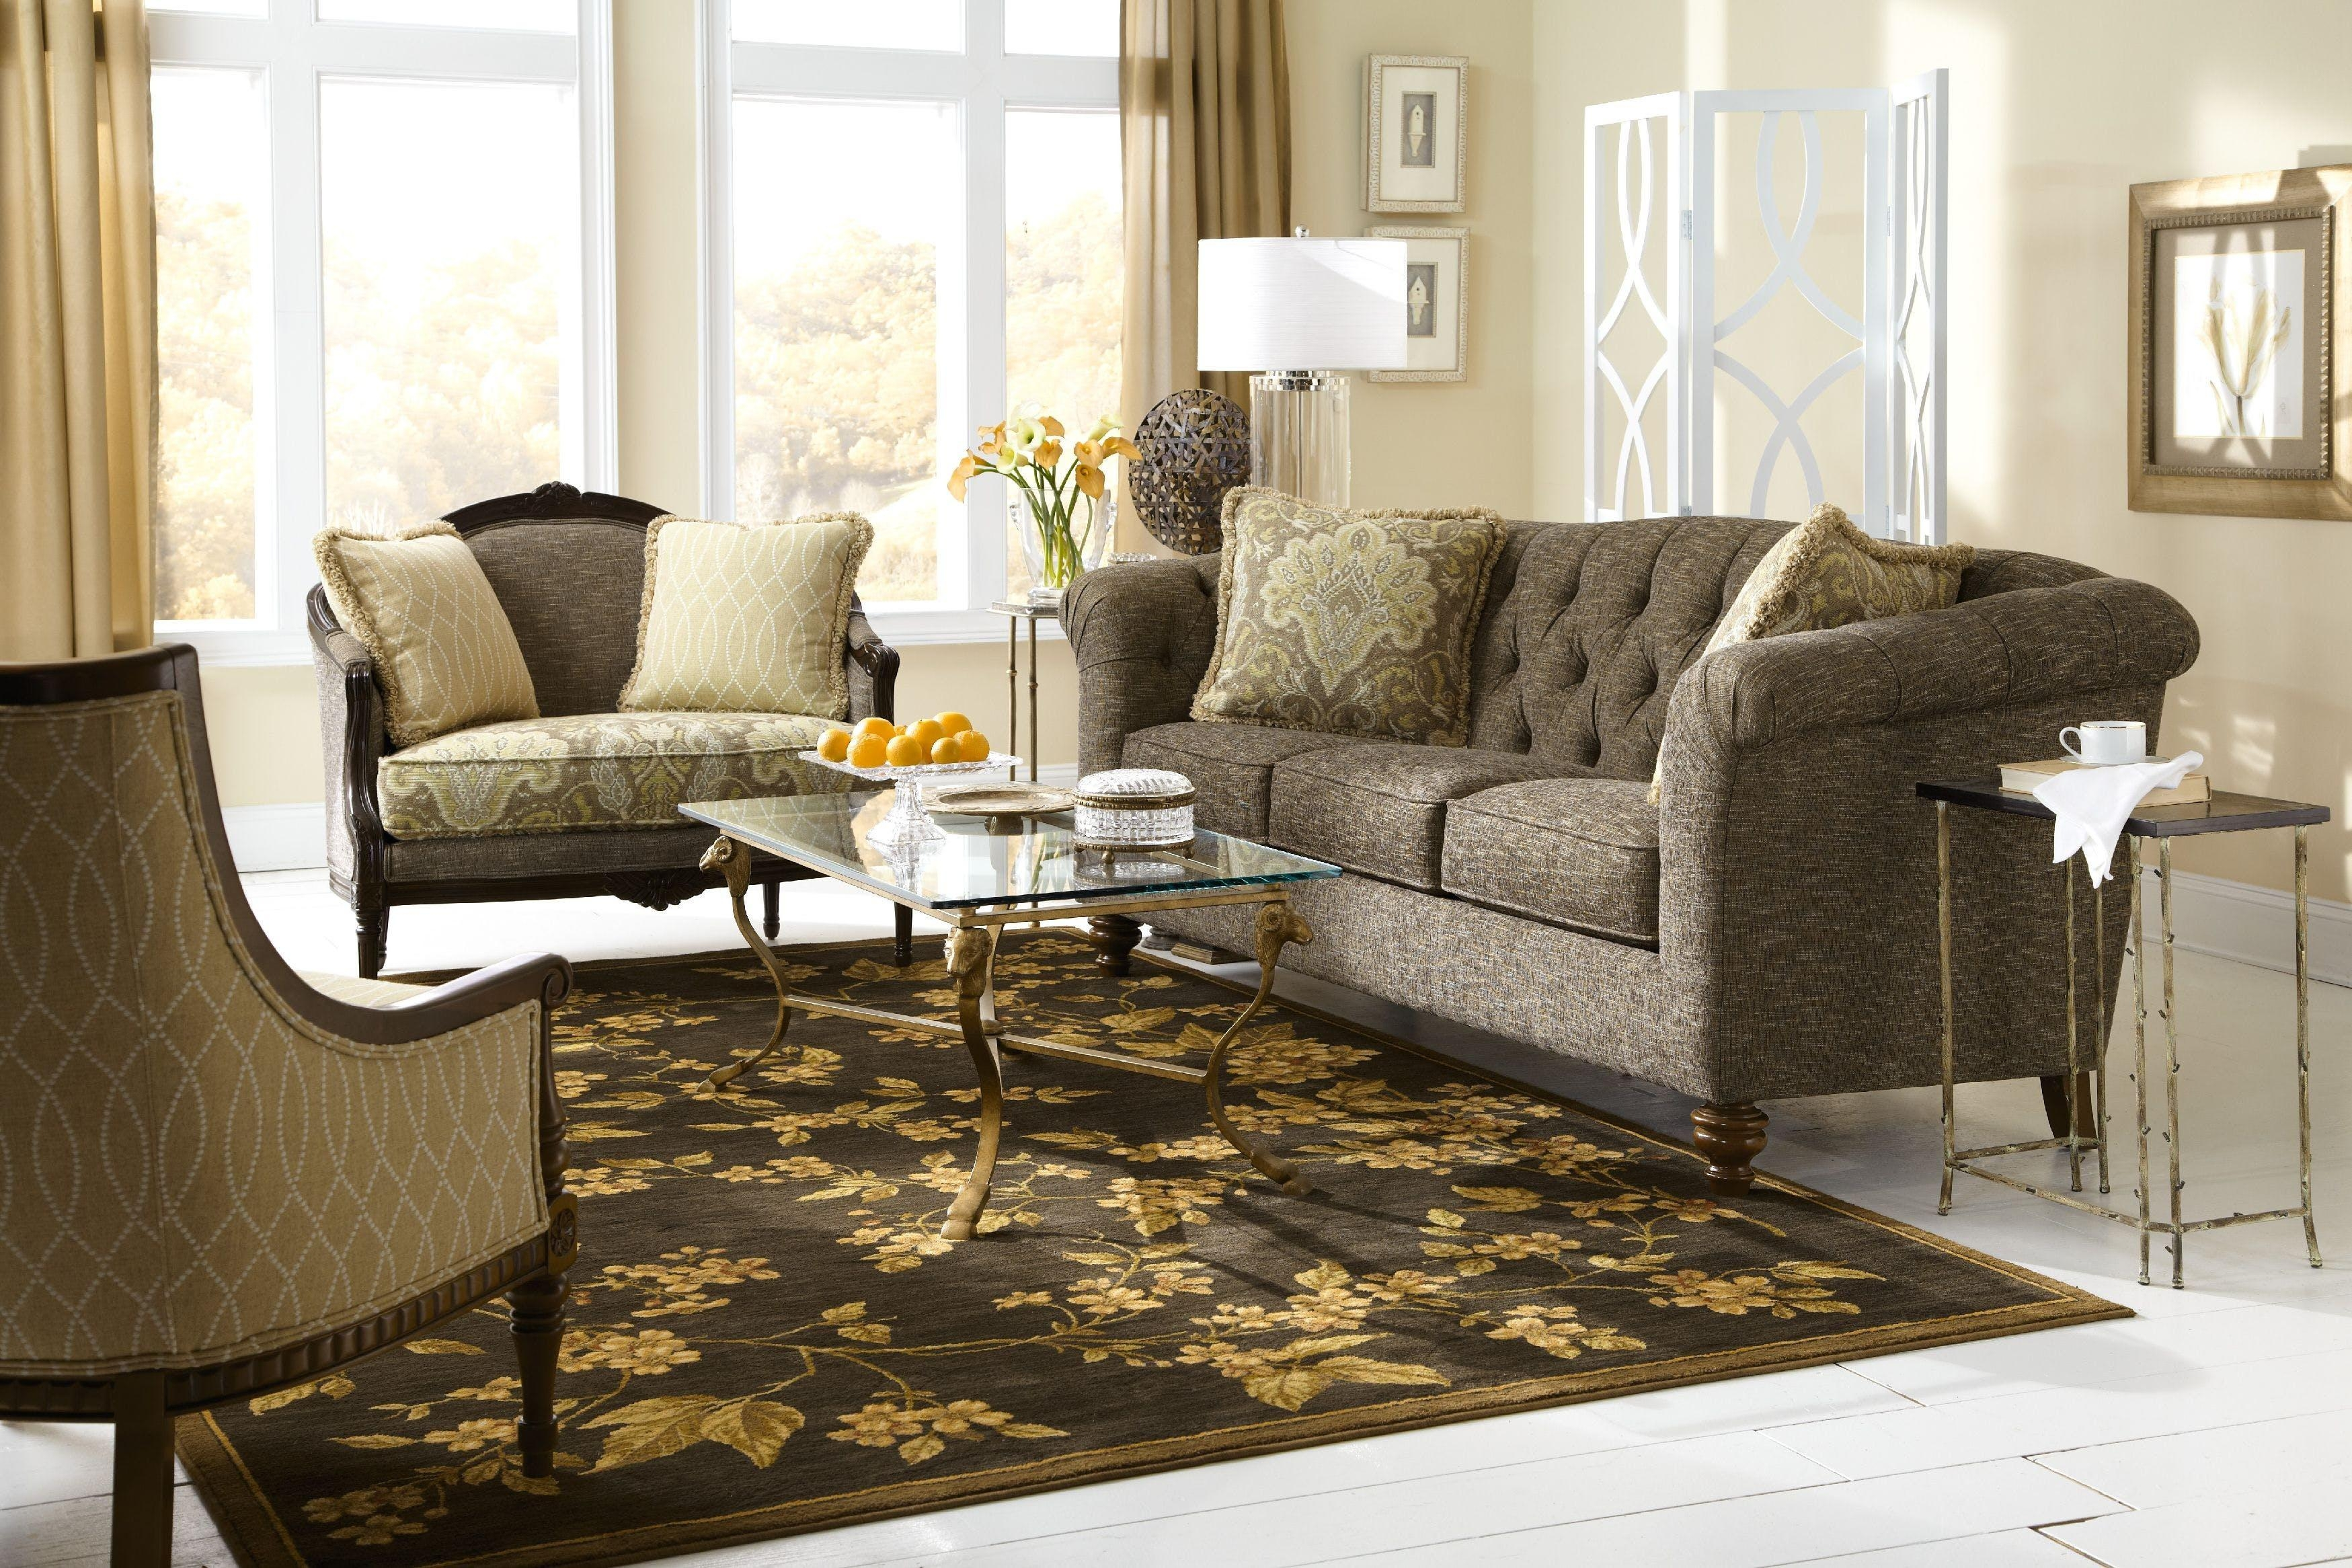 Furnitures: Craftmasters Furniture | Craftmaster Furniture Pertaining To Craftsman Sectional Sofa (Image 11 of 15)